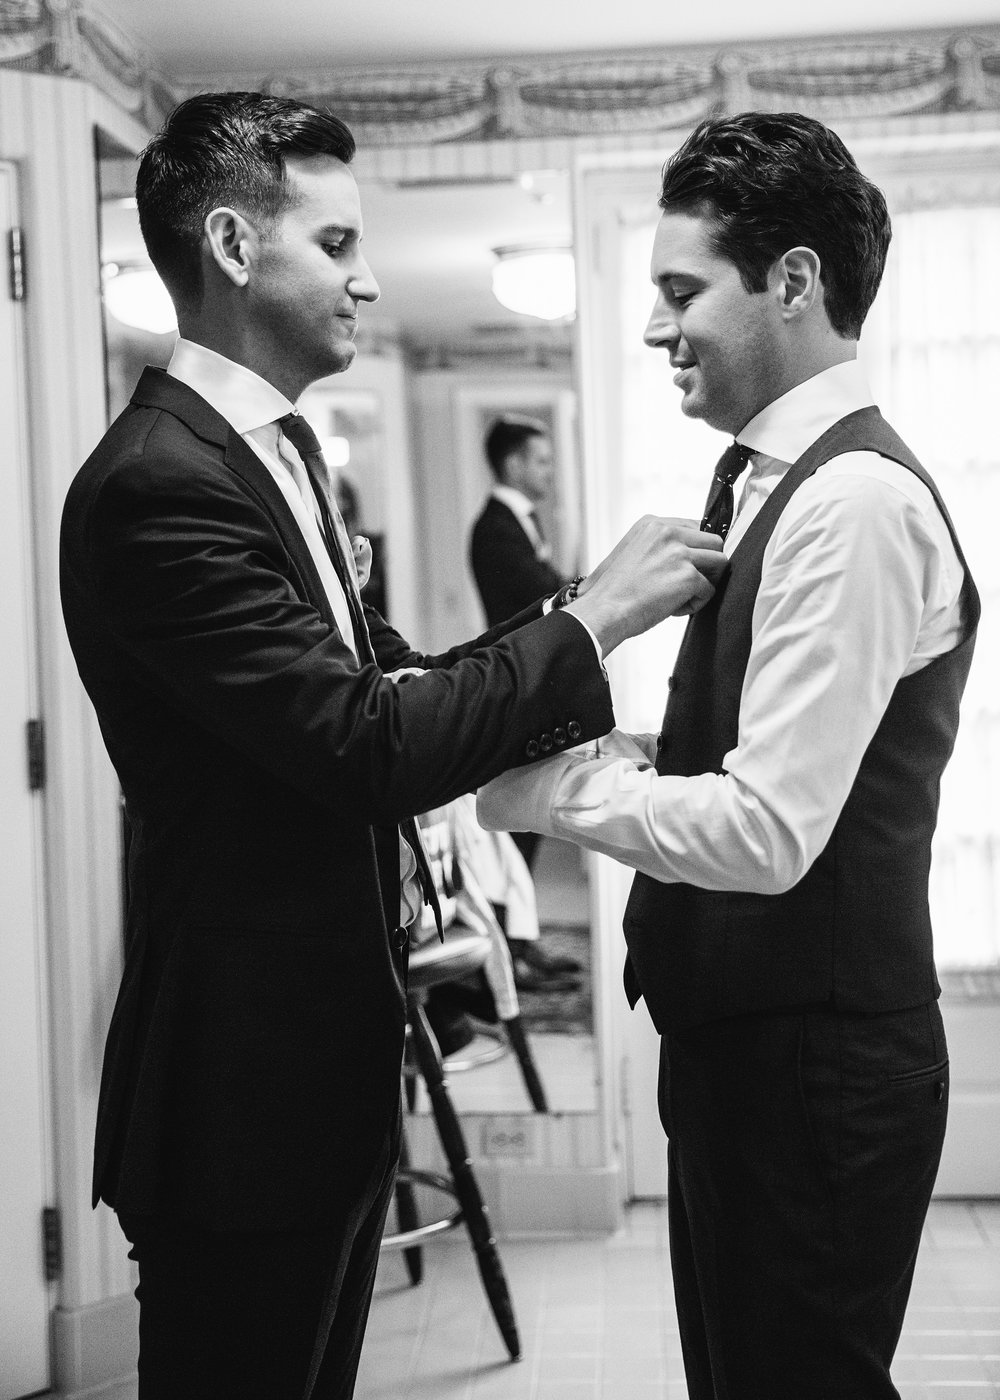 005Hudson-Nichols-Mark-Nick-Gay-Wedding-Same-Sex-Prep-Photos.jpg